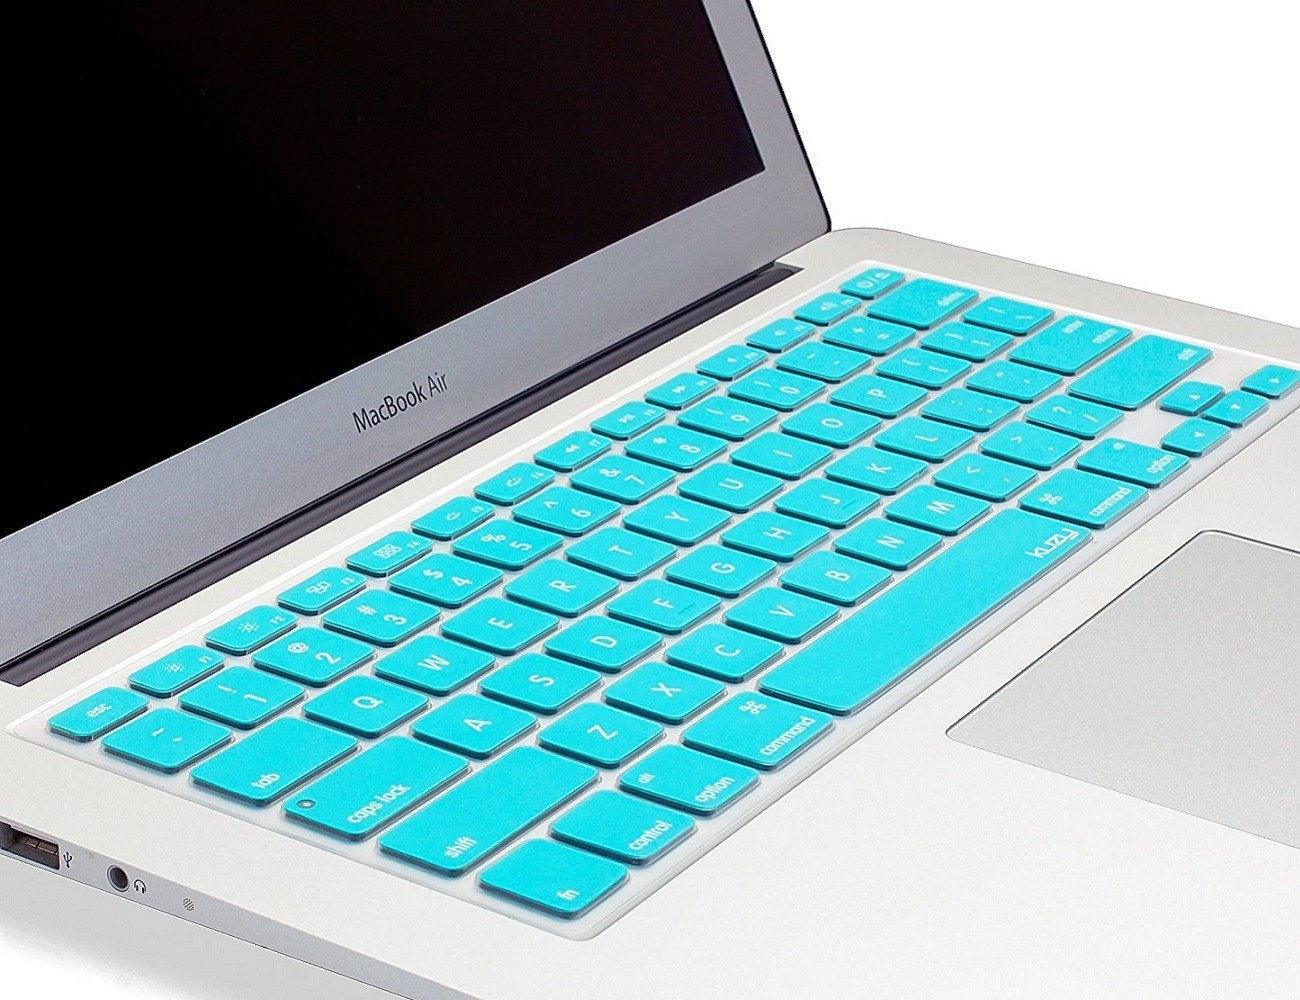 timeless design 79155 1a5a4 Turquoise Apple Keyboard Cover